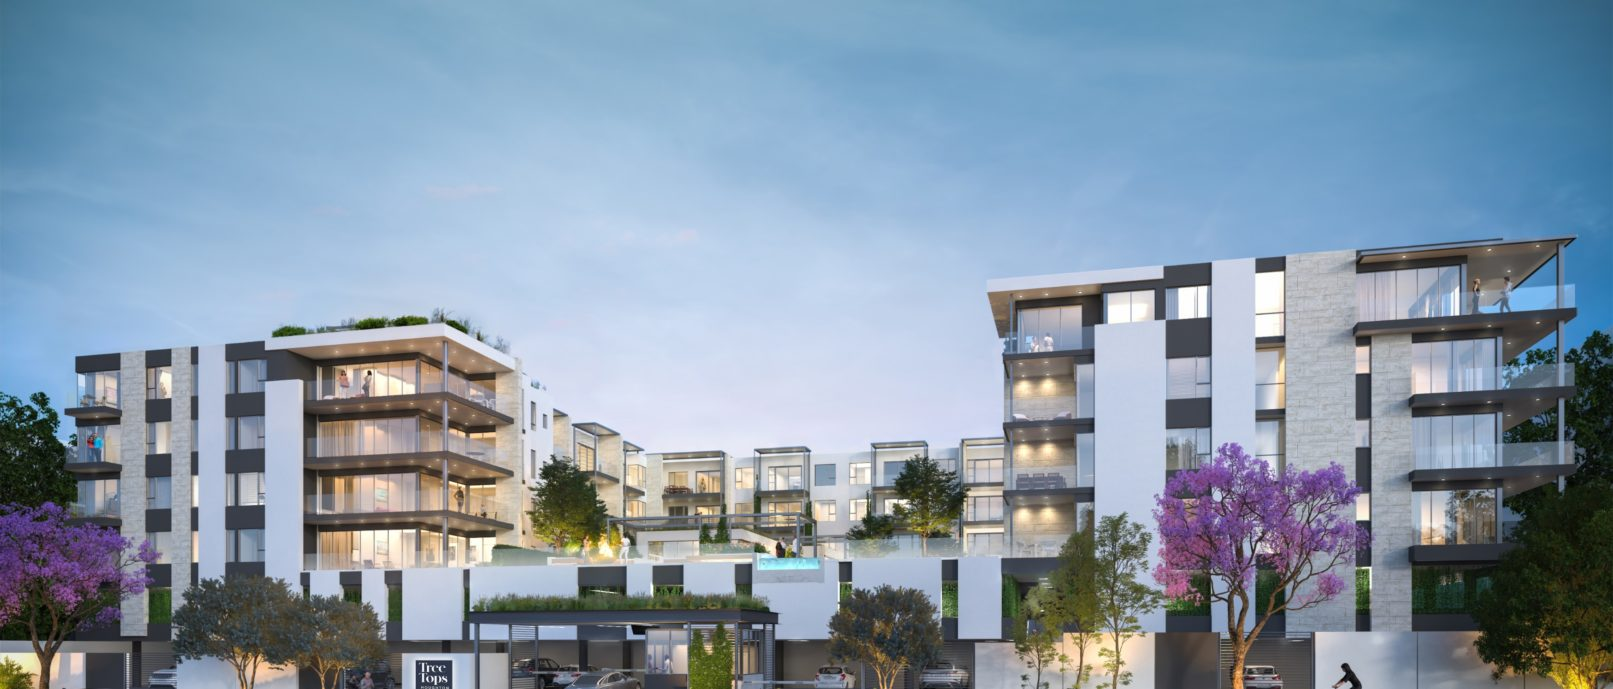 dhk unveils contemporary apartment block inspired by the world's largest urban forest